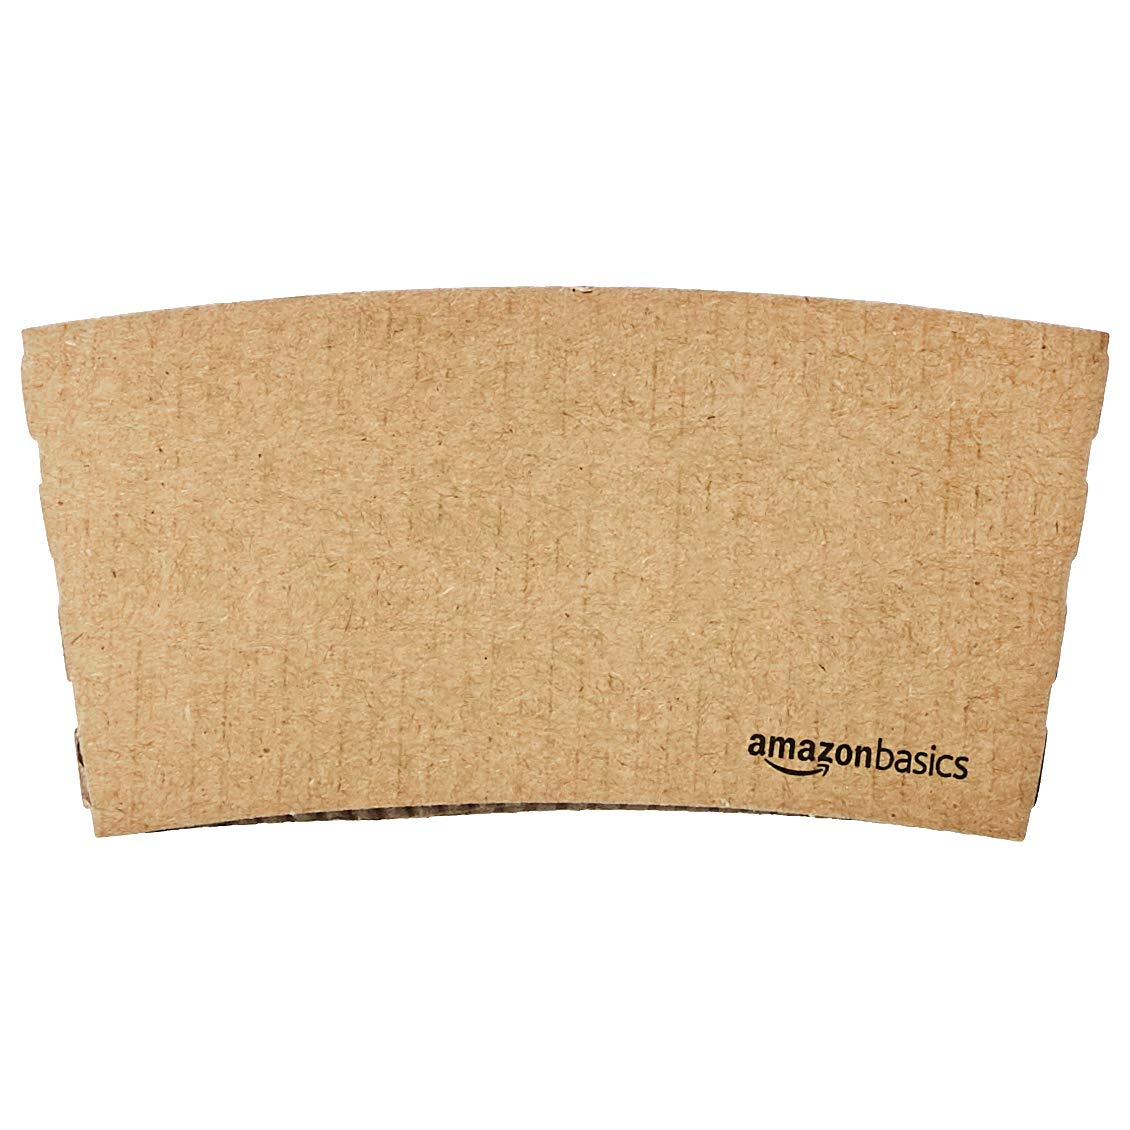 AmazonBasics Kraft Cup Sleeve for 10 and 12oz Paper Cup, 500-Count